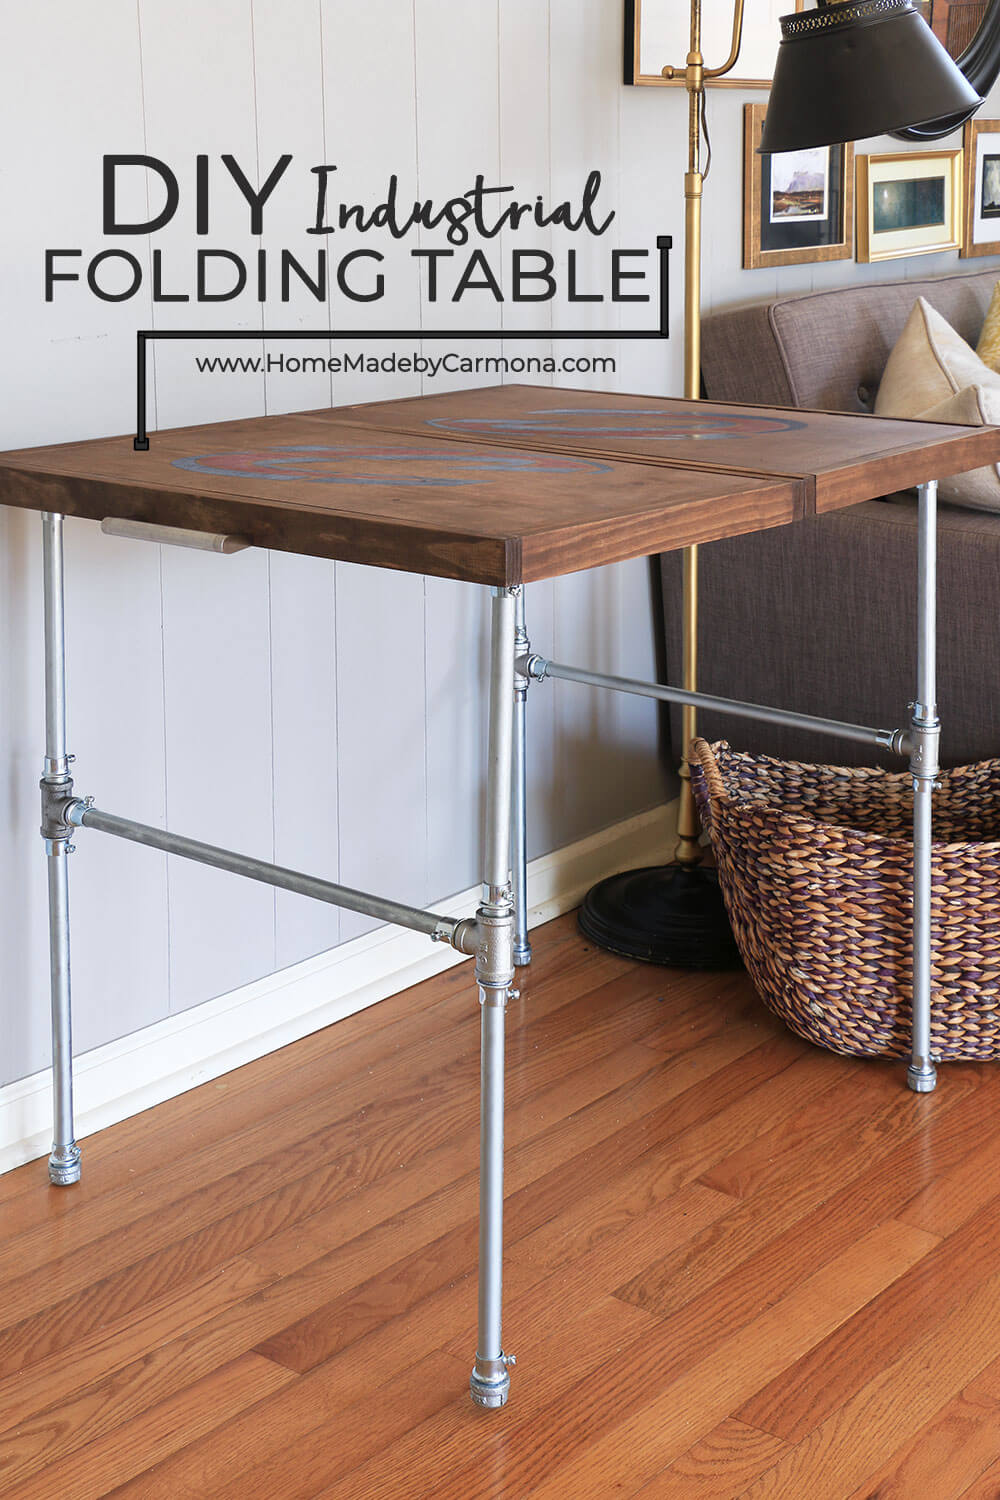 DIY Industrial Folding Table - Home Made By Carmona